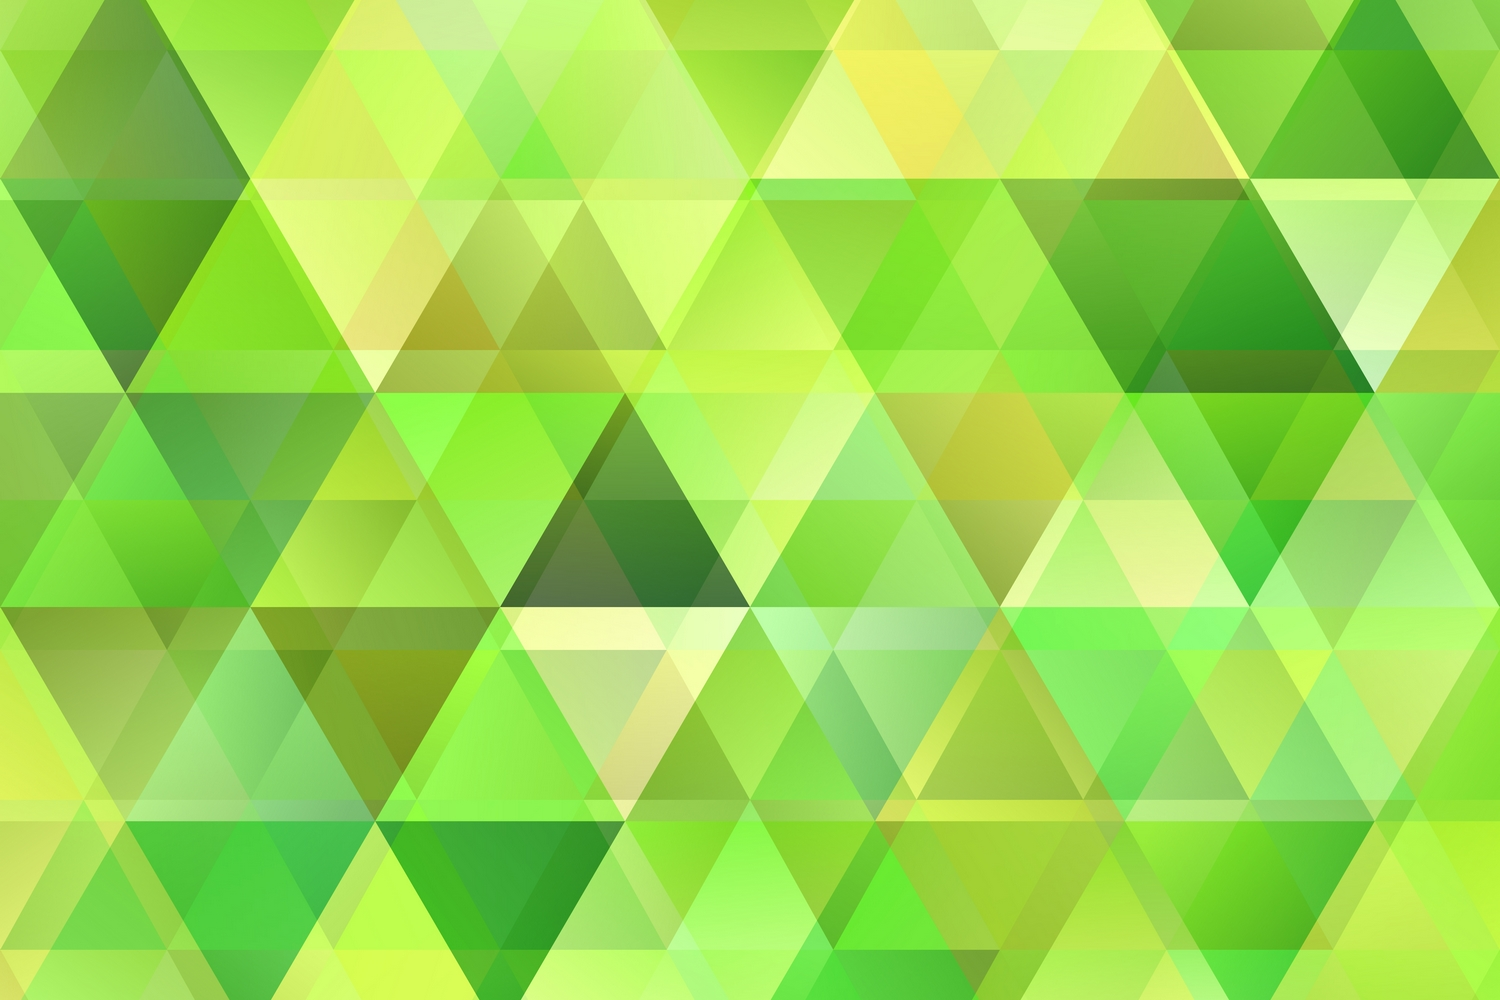 24 Gradient Polygon Backgrounds AI, EPS, JPG 5000x5000 example image 26